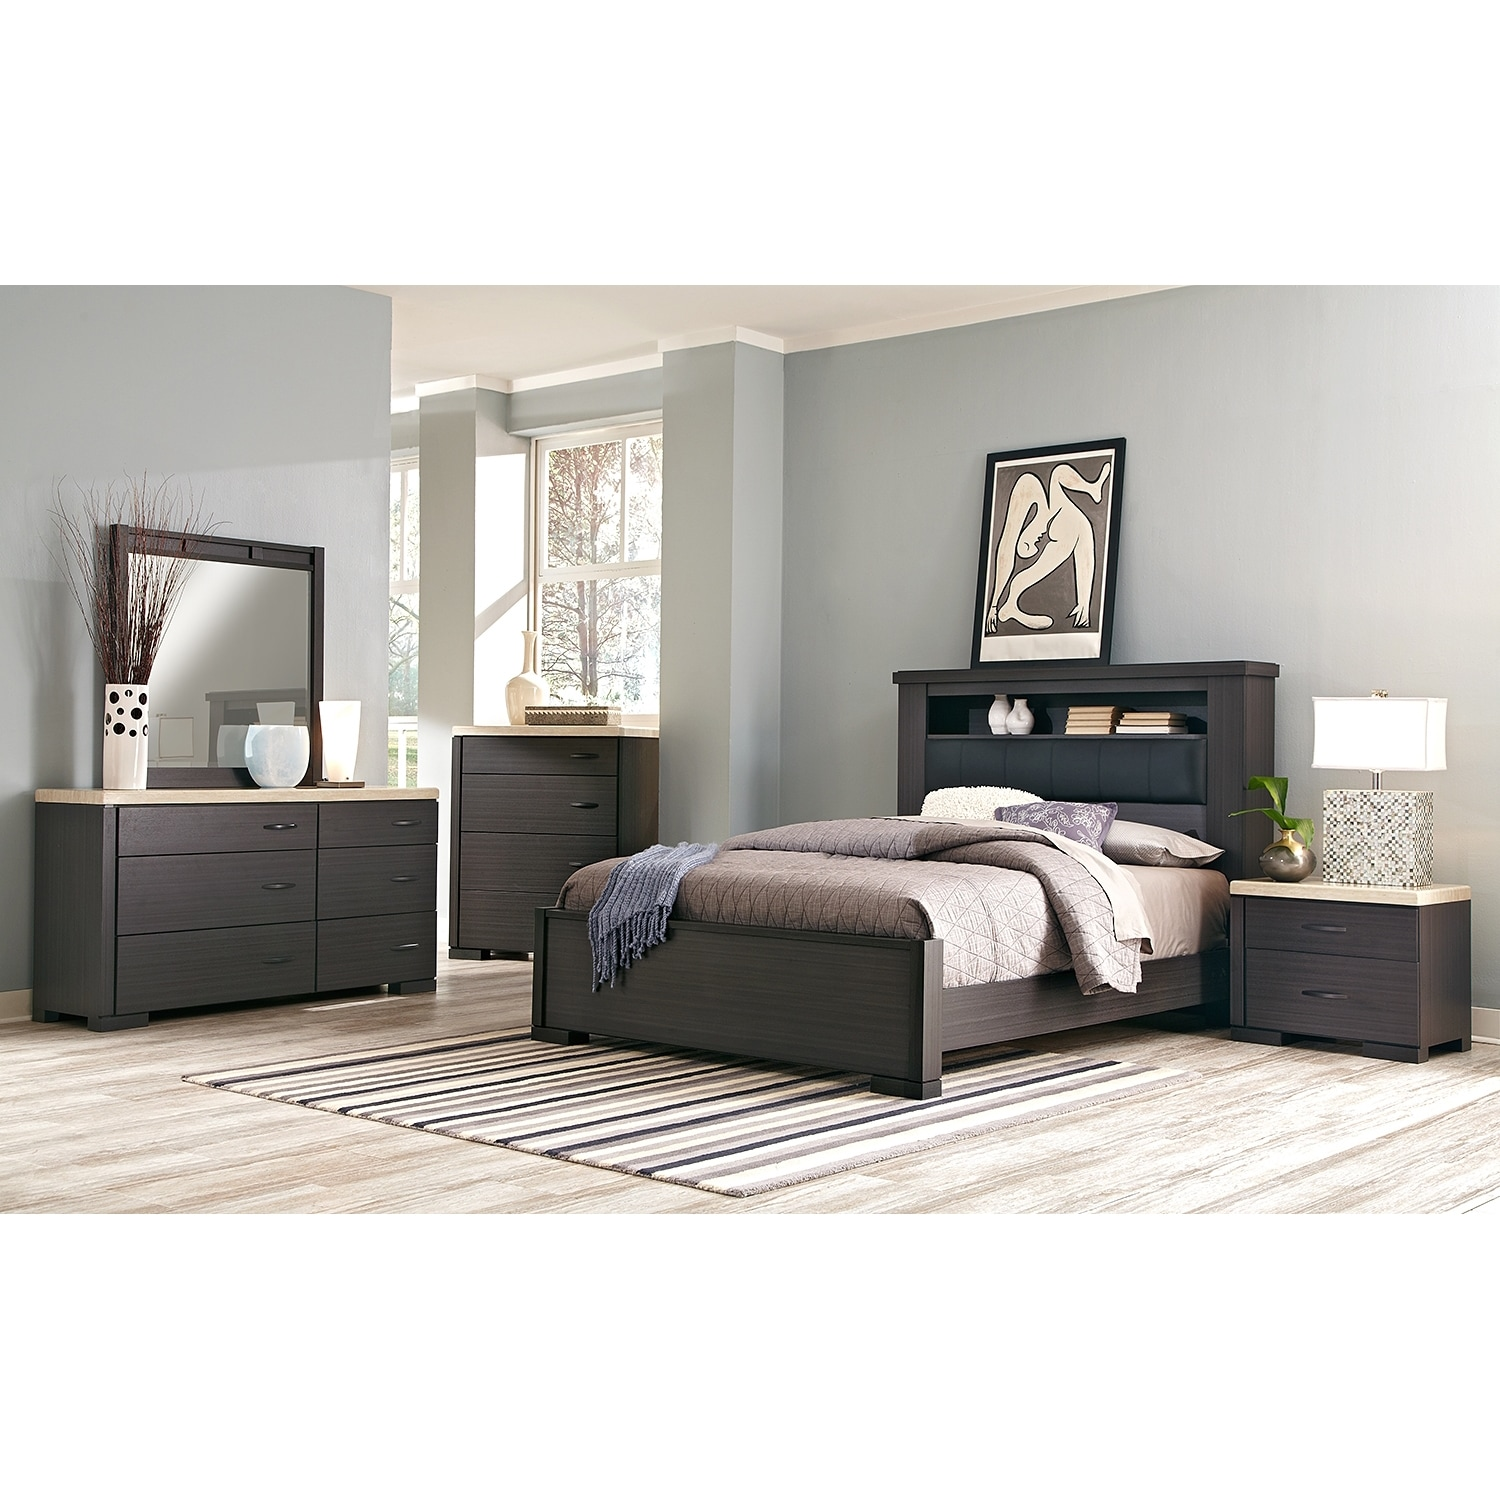 7 Piece King Bedroom Set   Charcoal and Ivory  Hover to zoom. Camino 7 Piece King Bedroom Set   Charcoal and Ivory   Value City